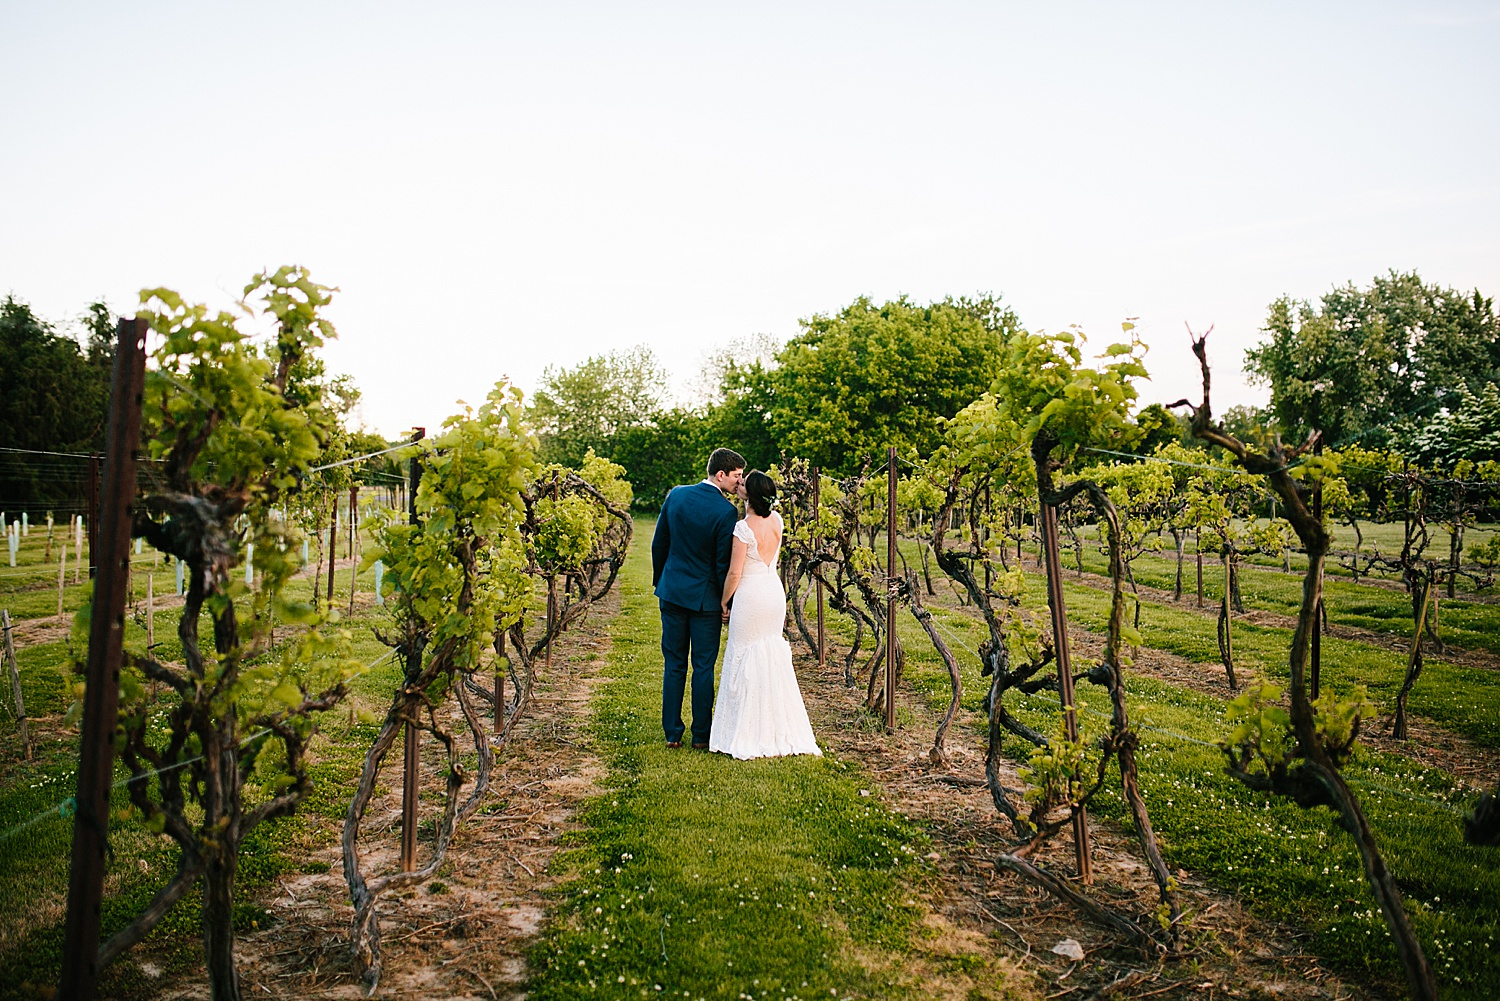 emilyaustin_rosebank_winery_newhope_farm_wedding_image110.jpg